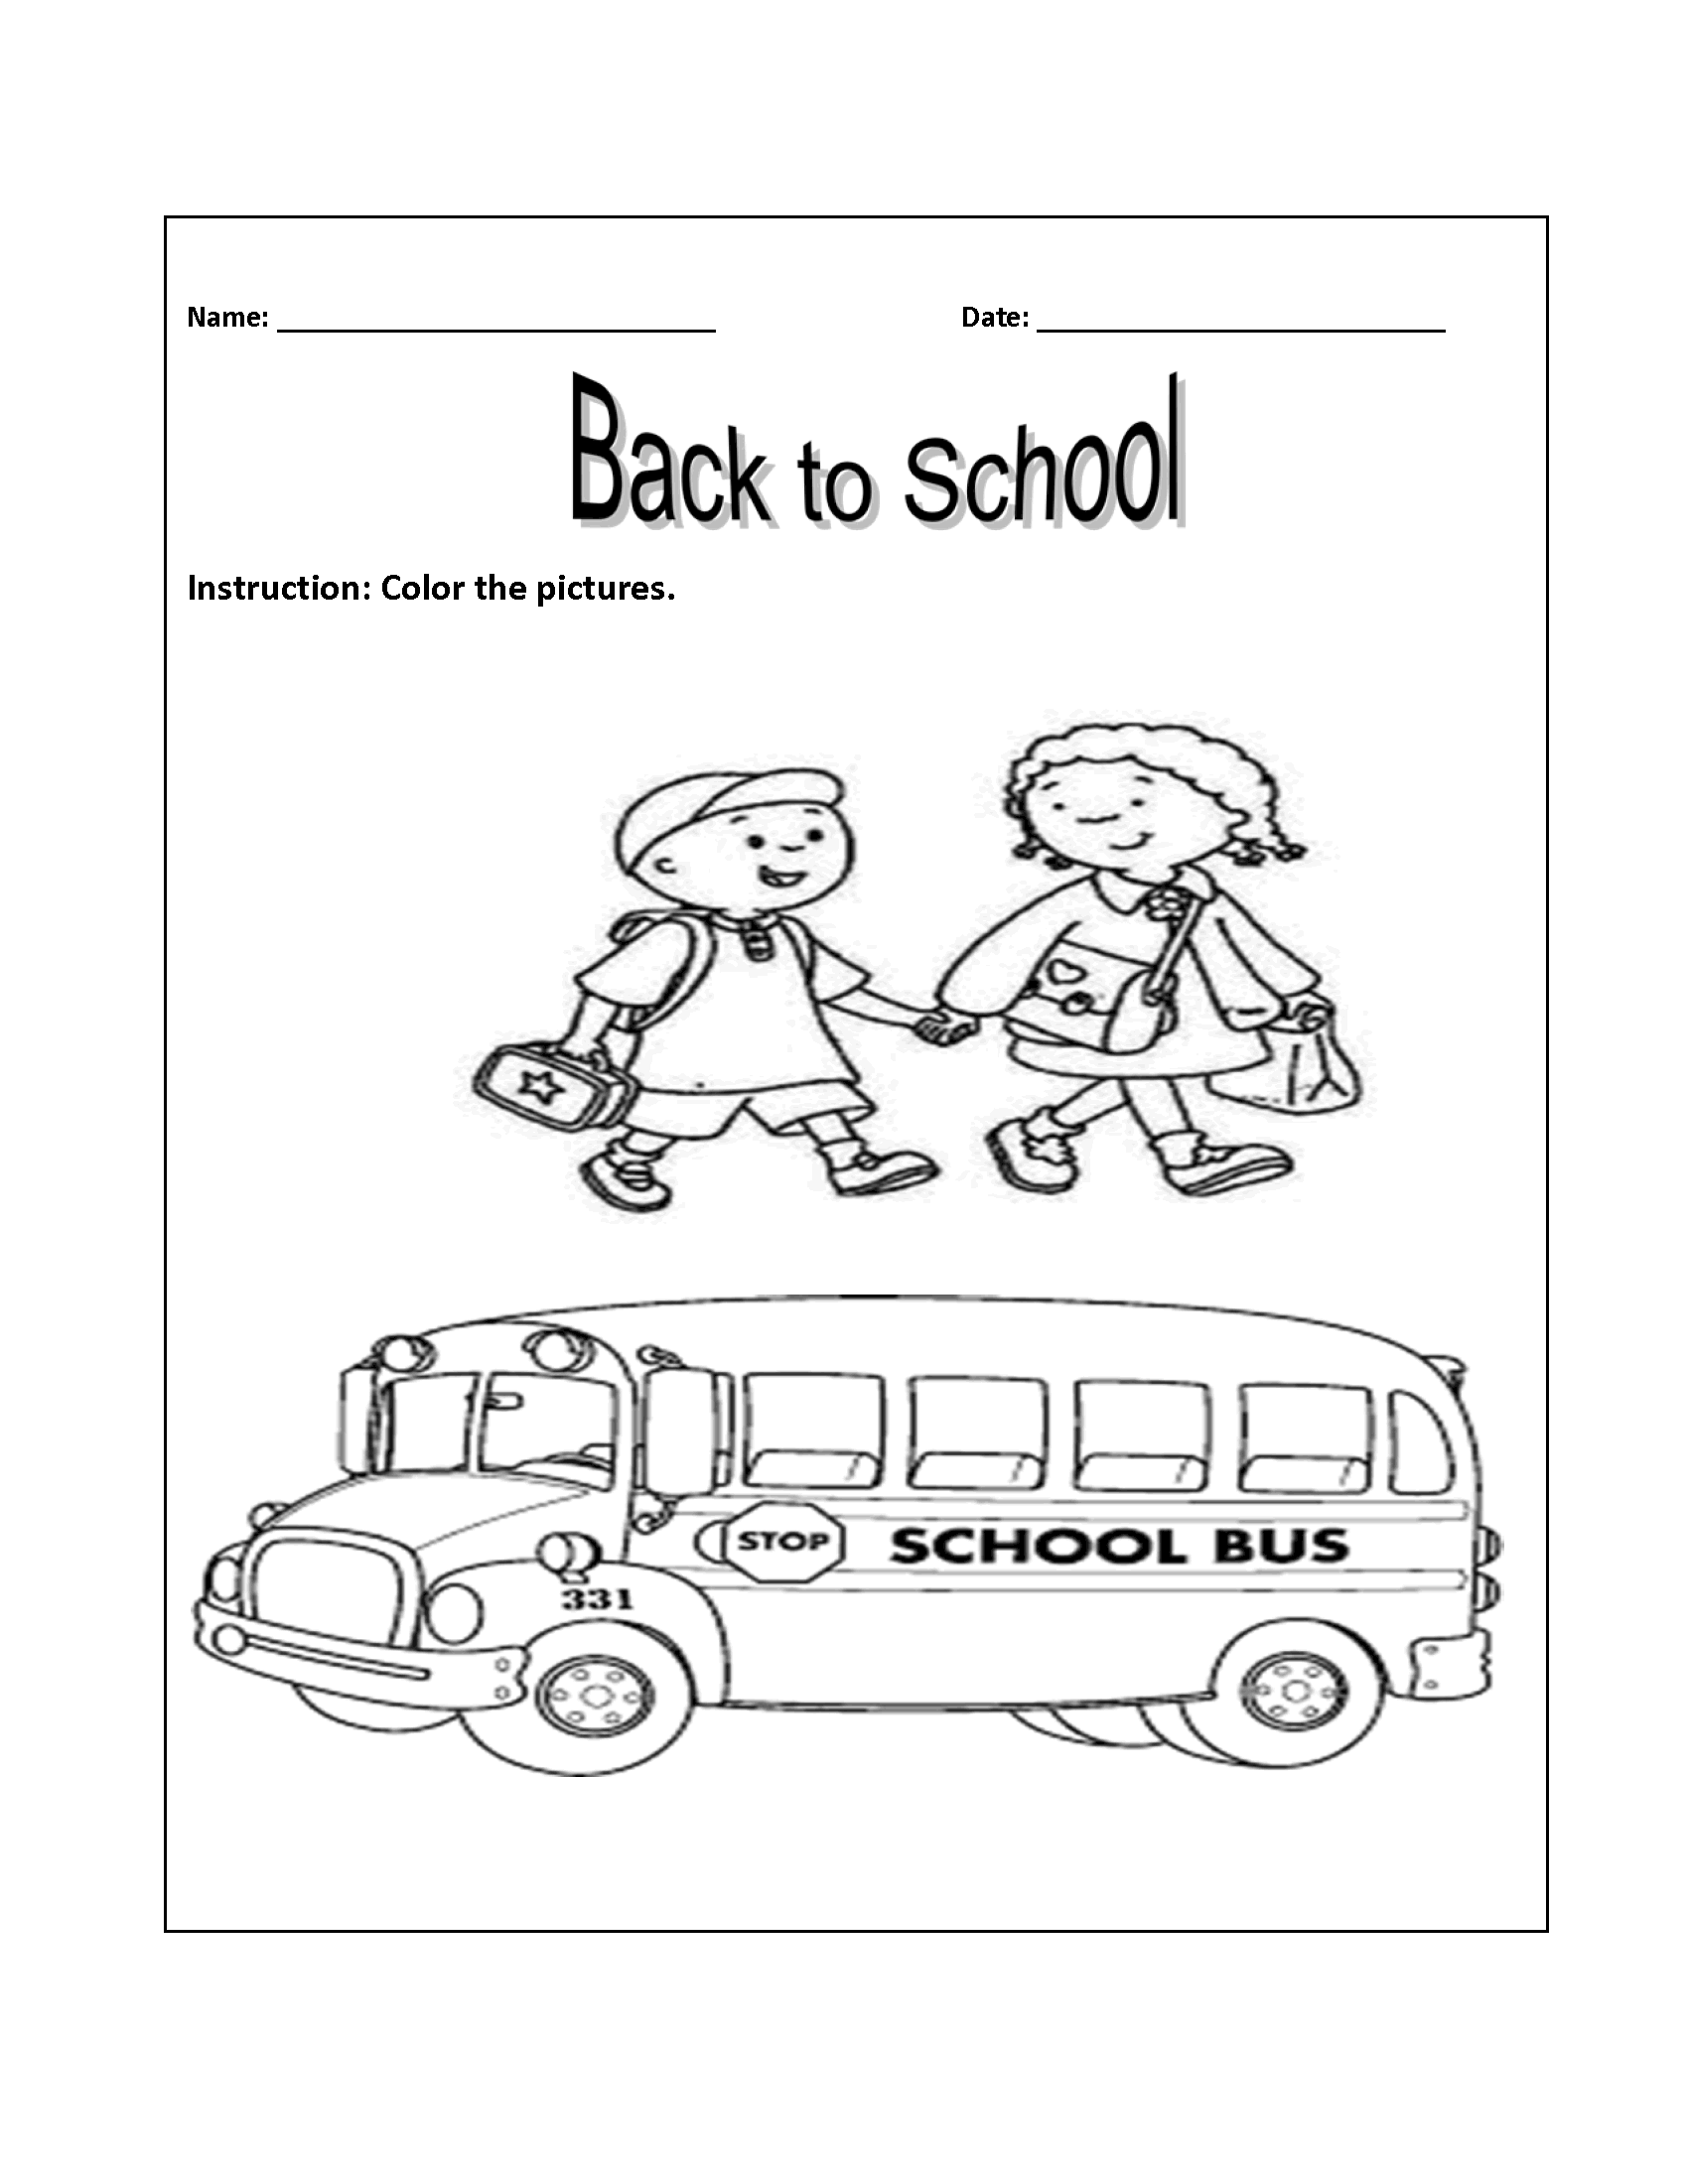 Banner Back to School Word Search Printable Two Child And Bus png